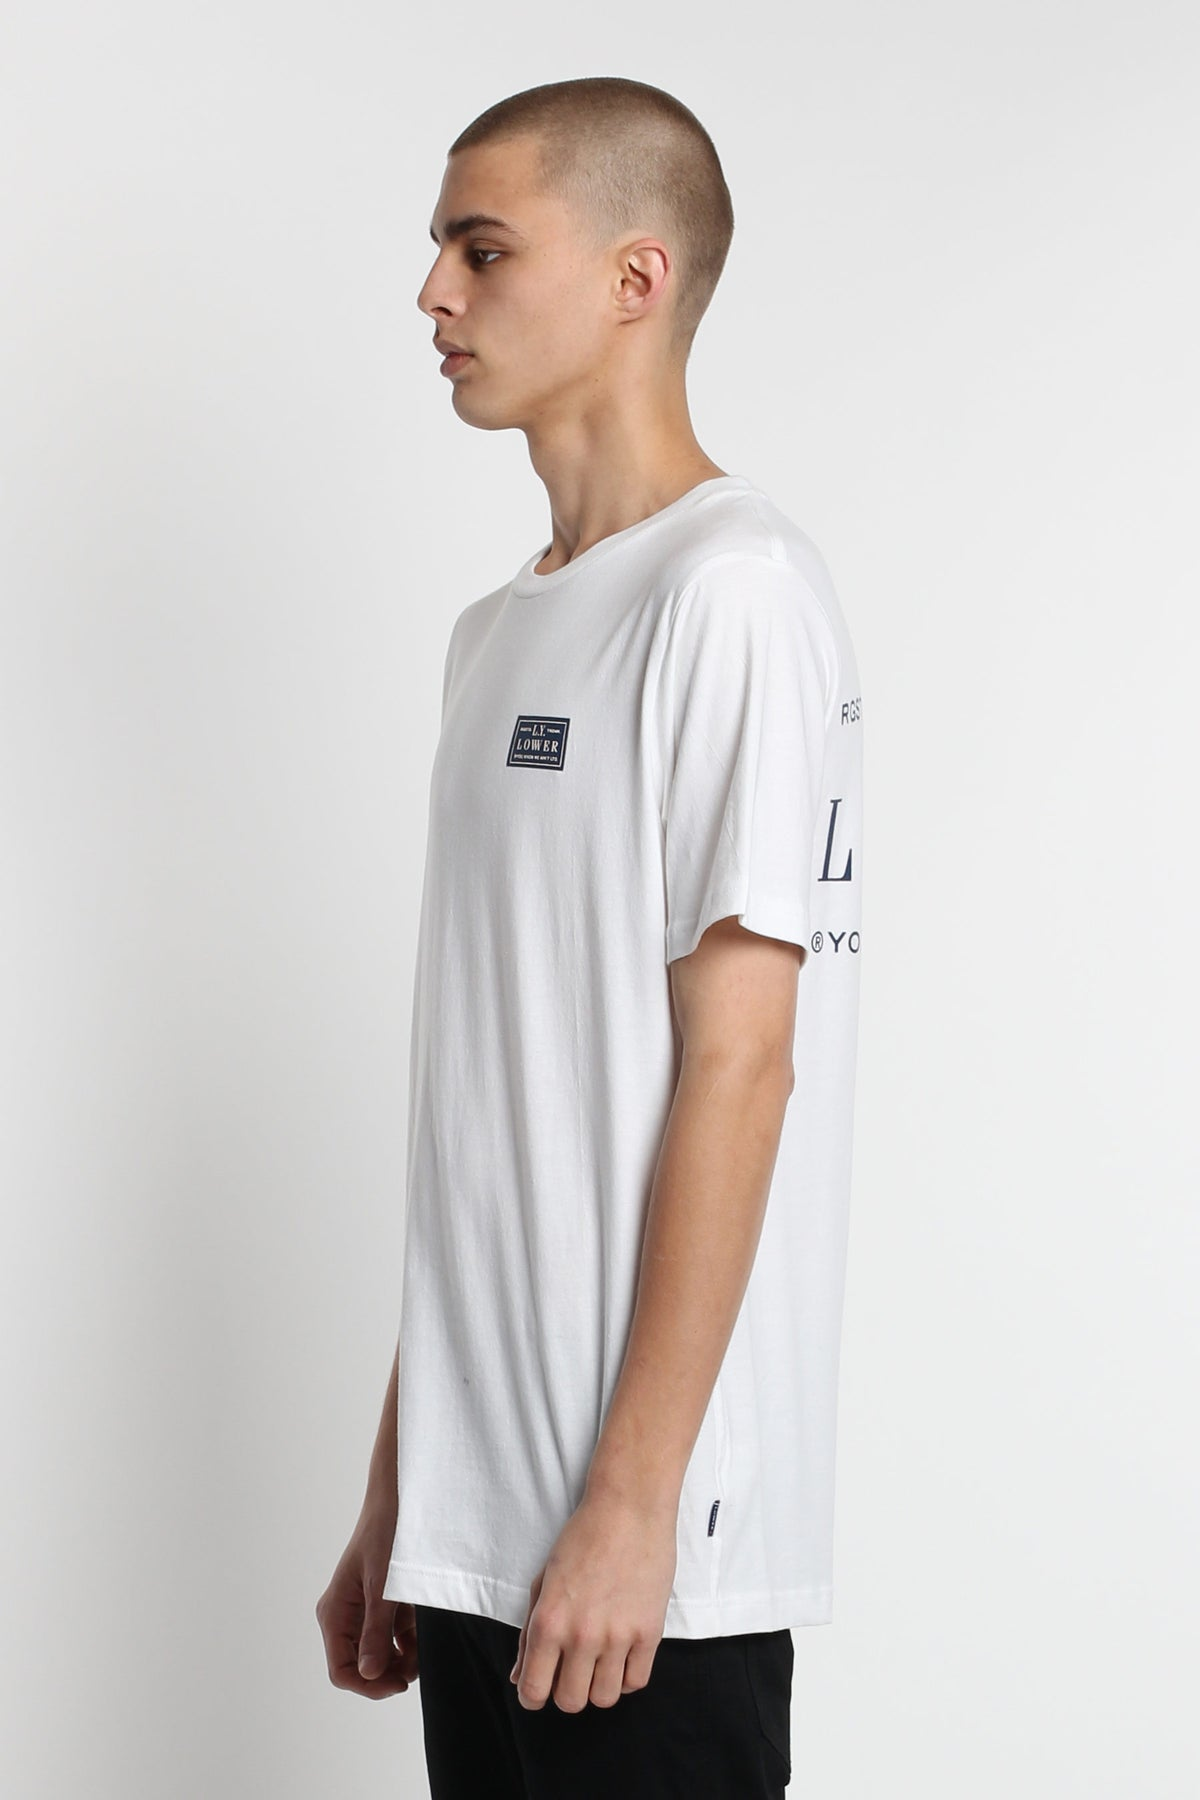 Rodeo QRS Tee - White